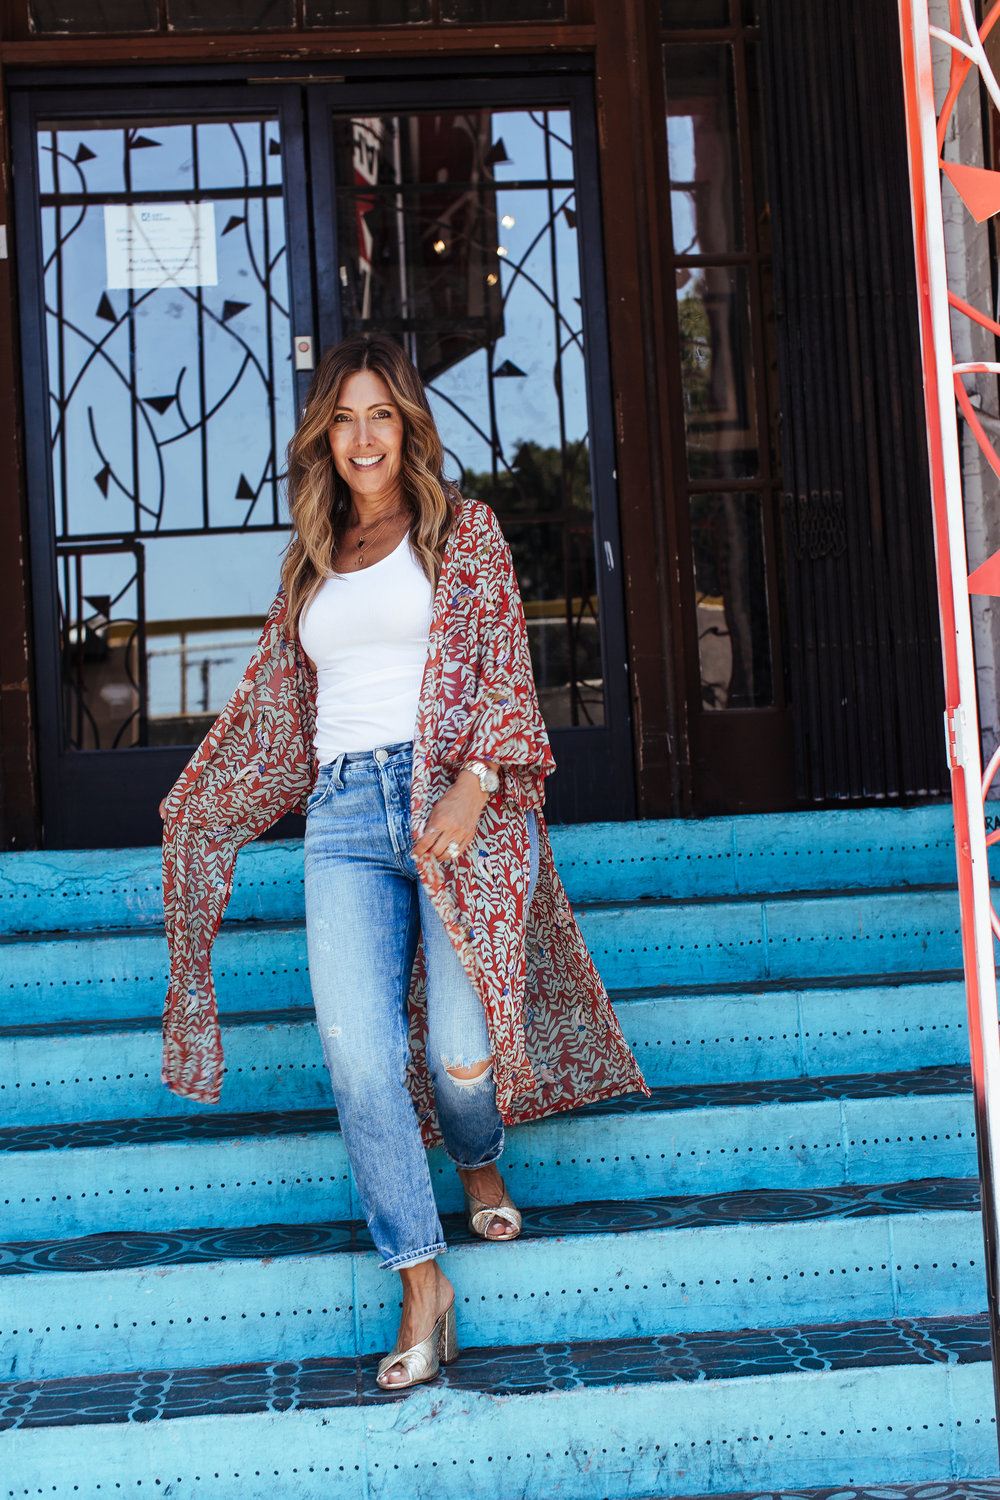 Jeans:  AMO (similar) ,  Tank top  and  Kimono   (similar) : Franne Golde, Shoes:  Loeffler Randall